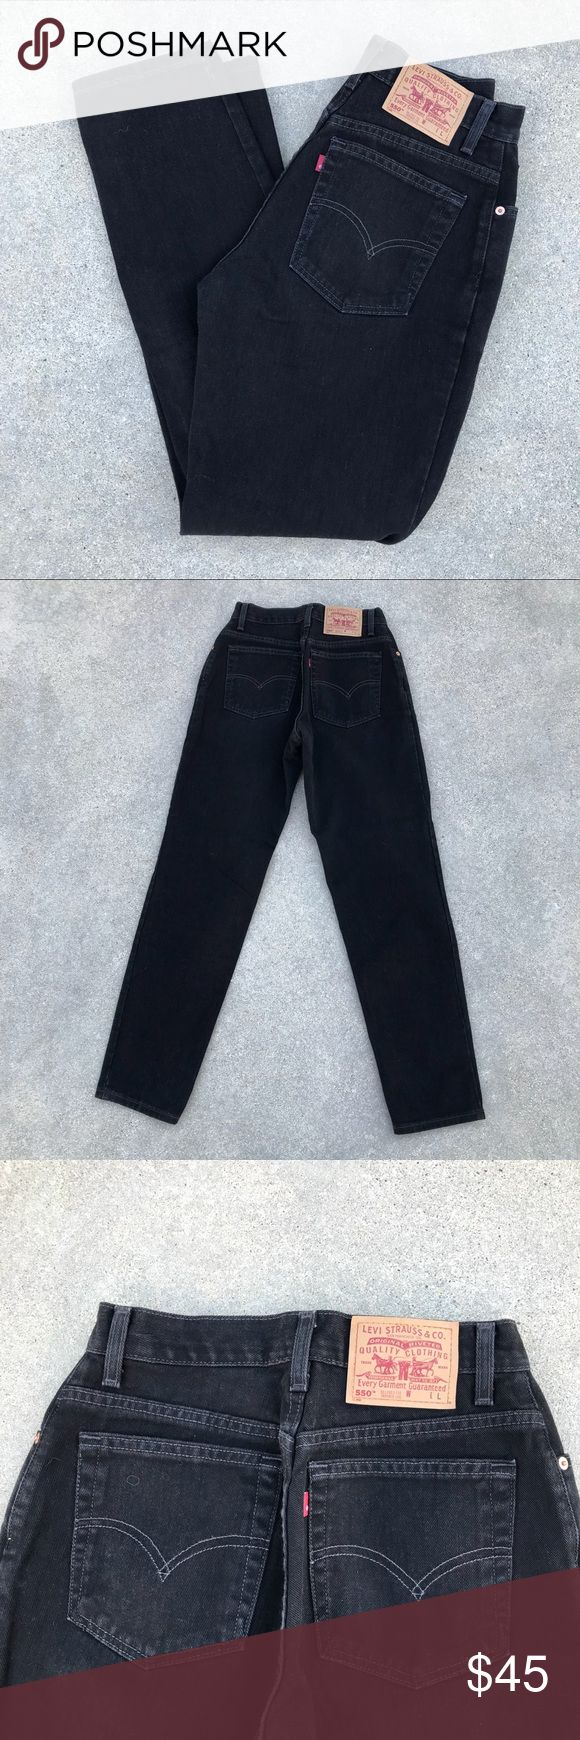 Vintage Black Levi 550 Jeans Vintage Black Levi 550 Jeans in size 8 long. Great condition with no signs of wear. Measurements are as follows: Waist: 28 inches  Inseam: 32 inches  Rise: 12 inches Levi's Jeans